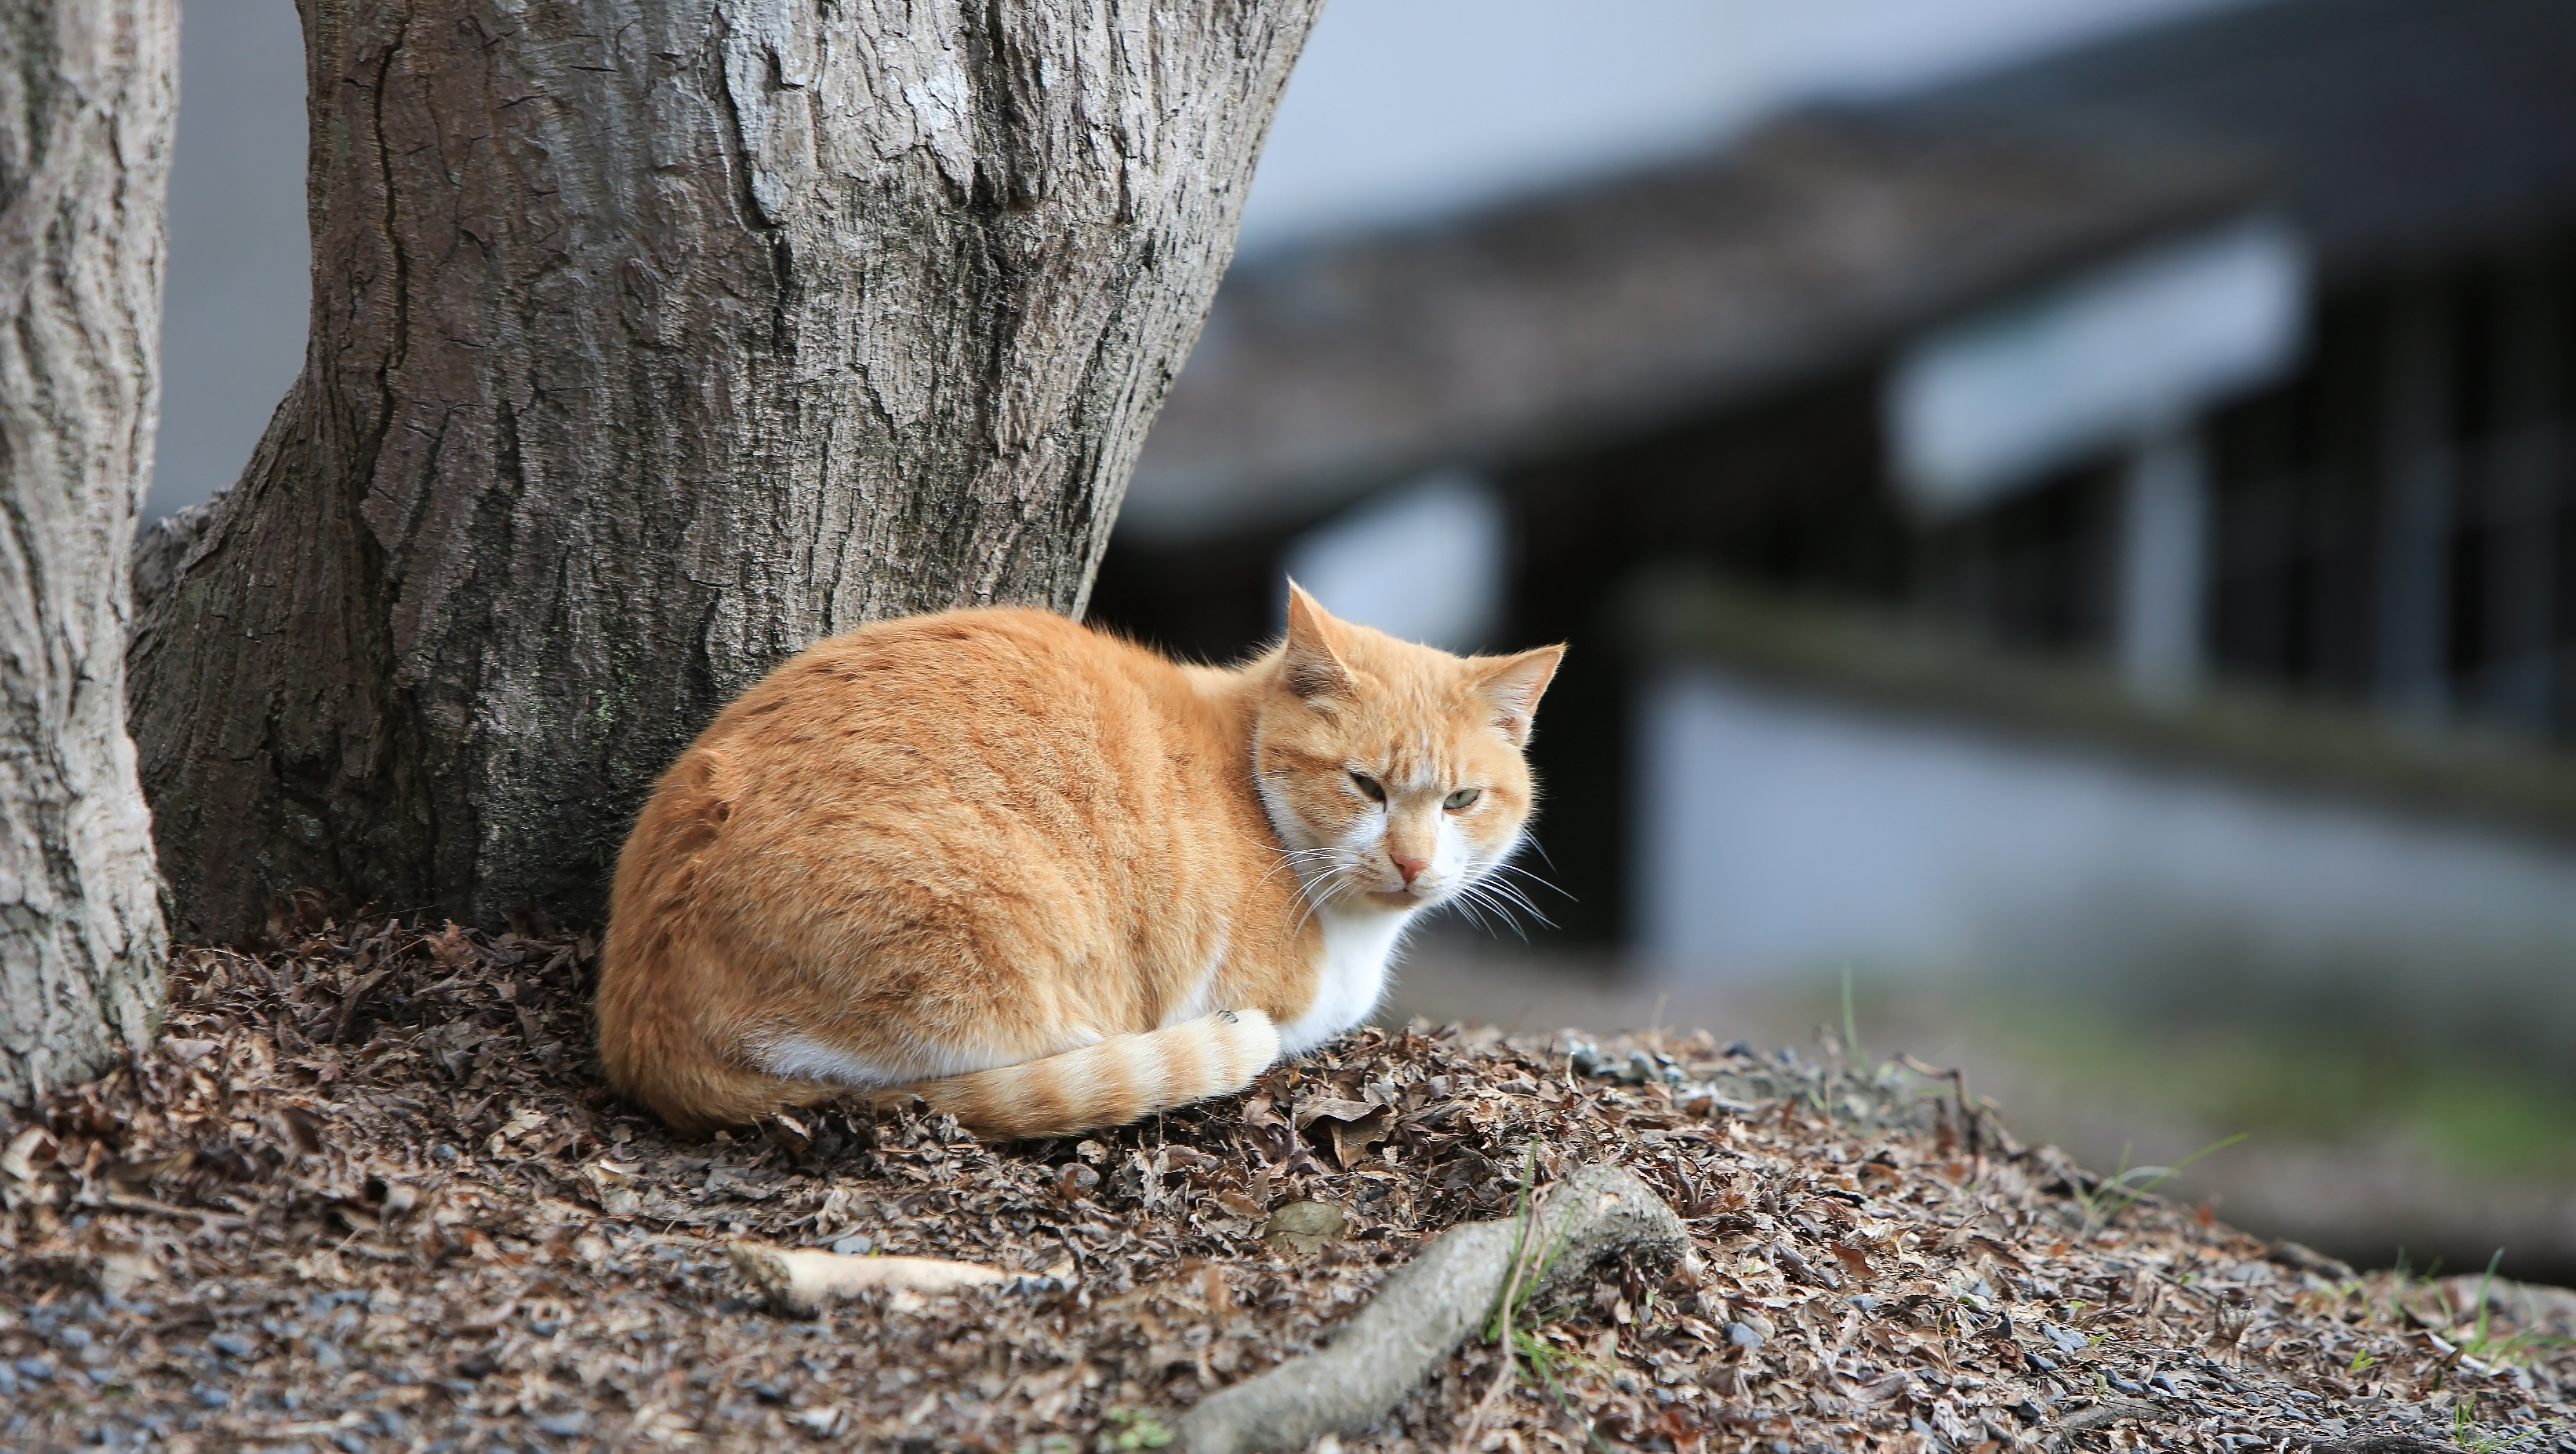 Cat leaning against tree in Japan